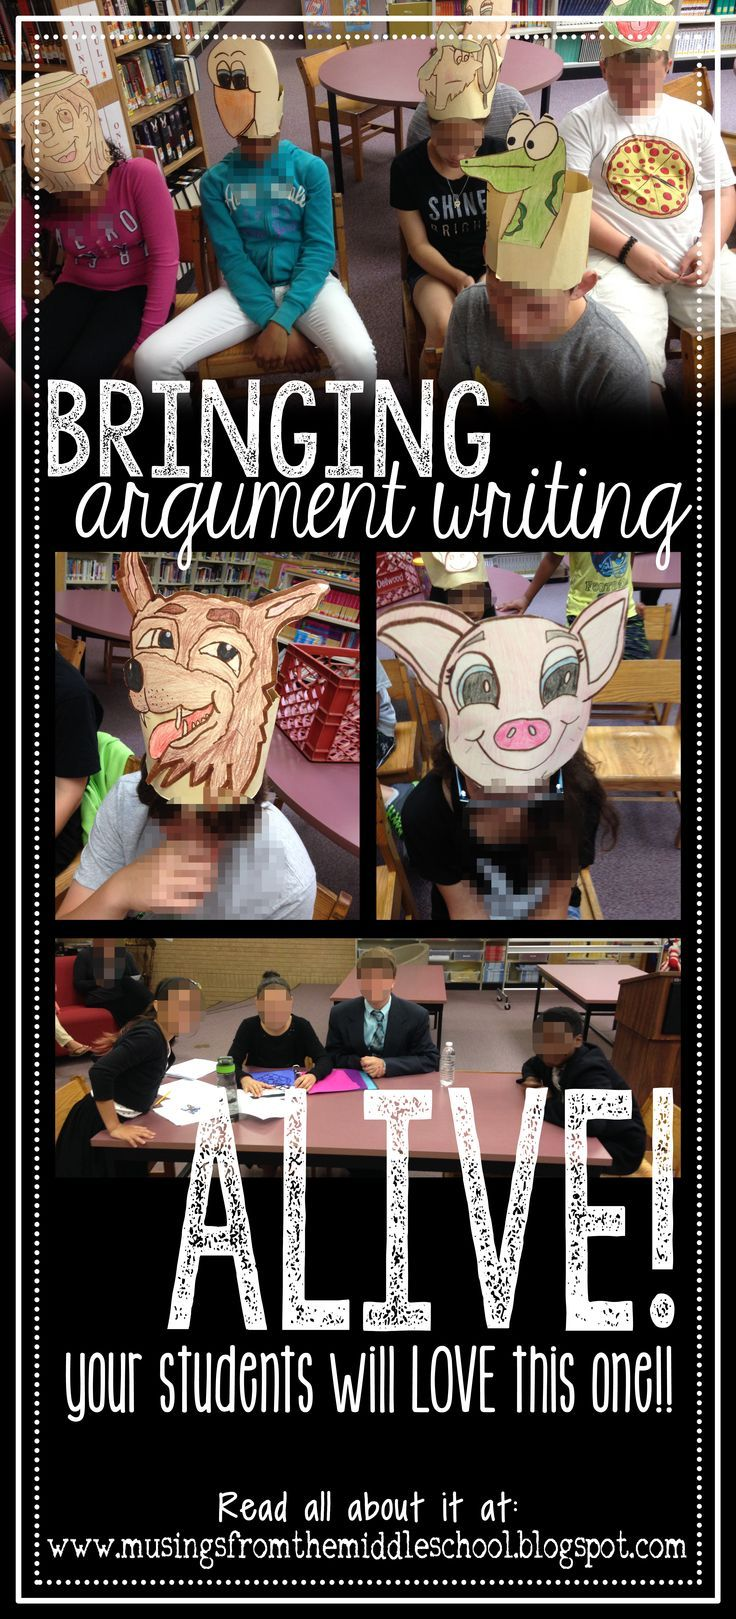 Your students will LOVE this spin on argument writing!